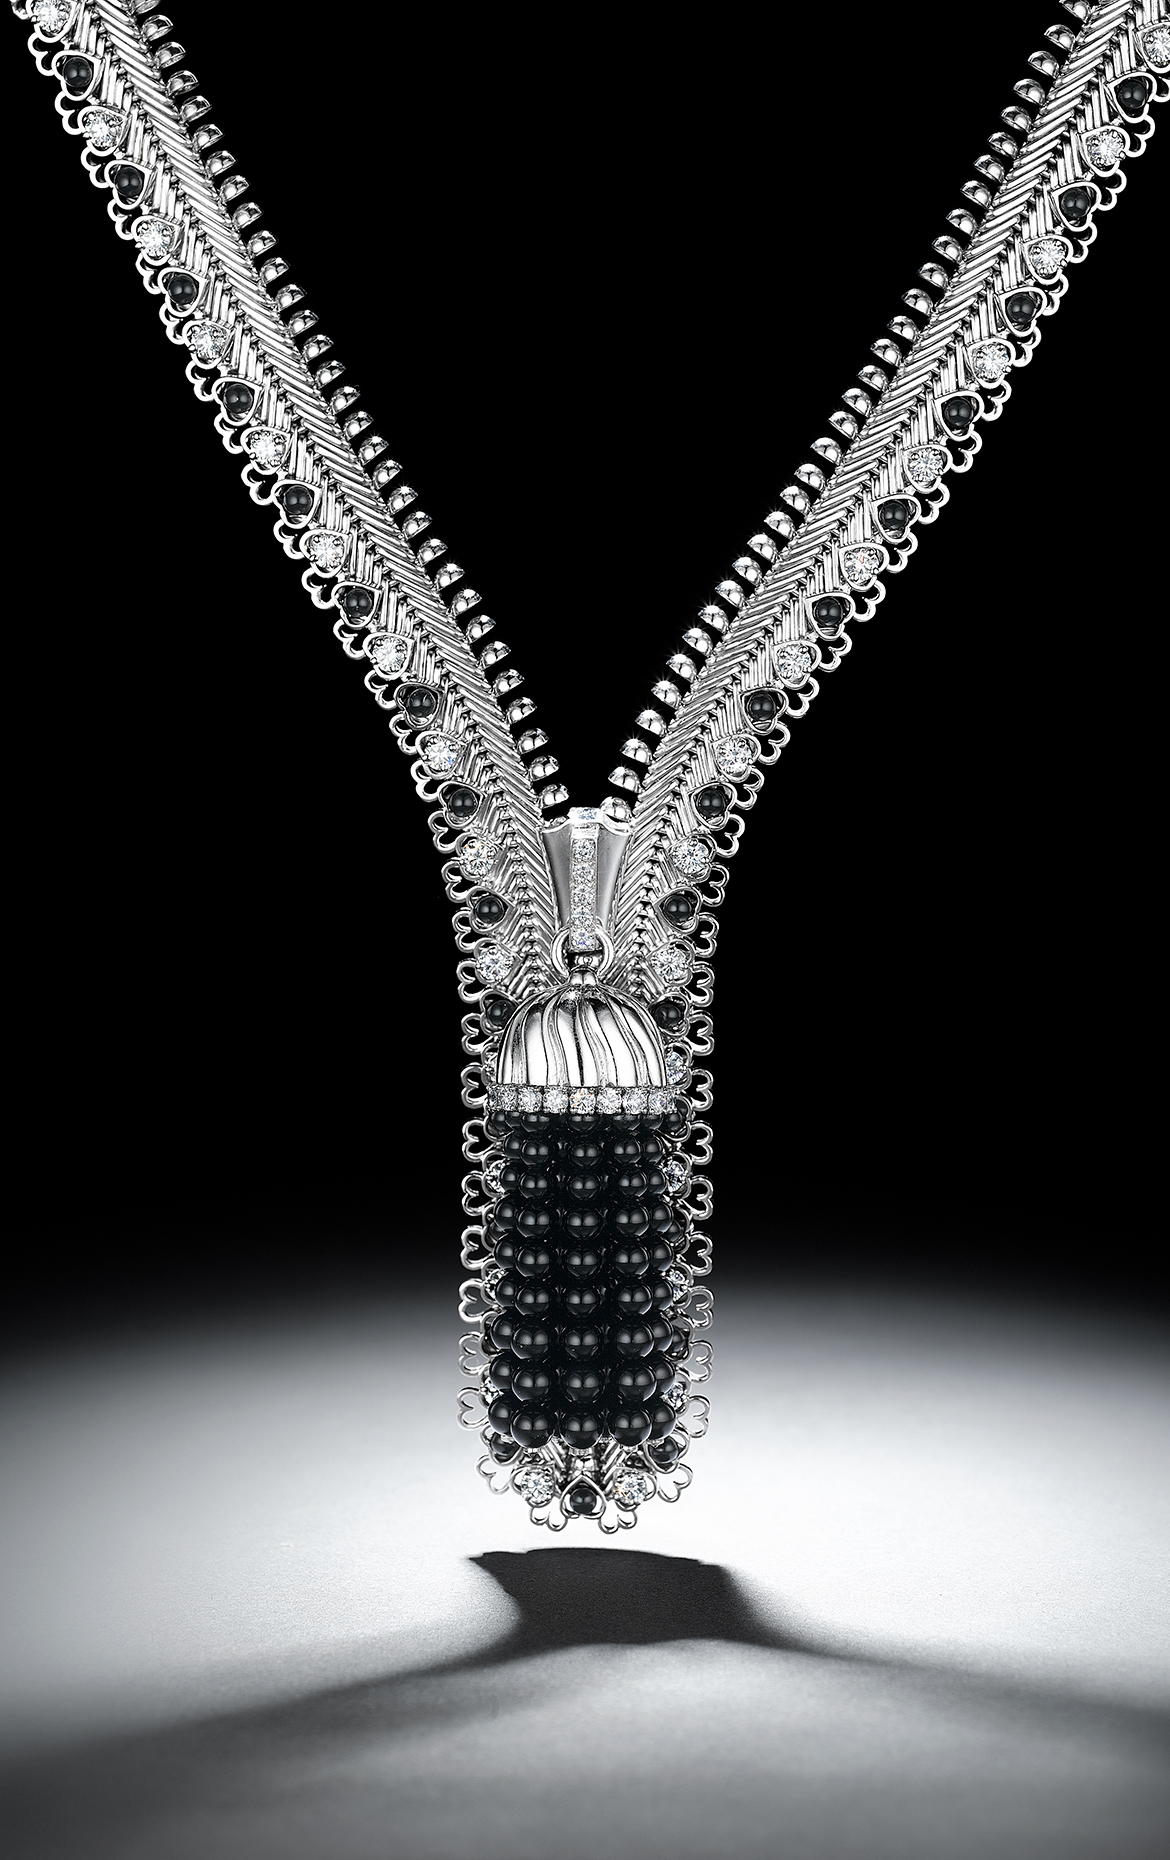 Van Cleef Zipper